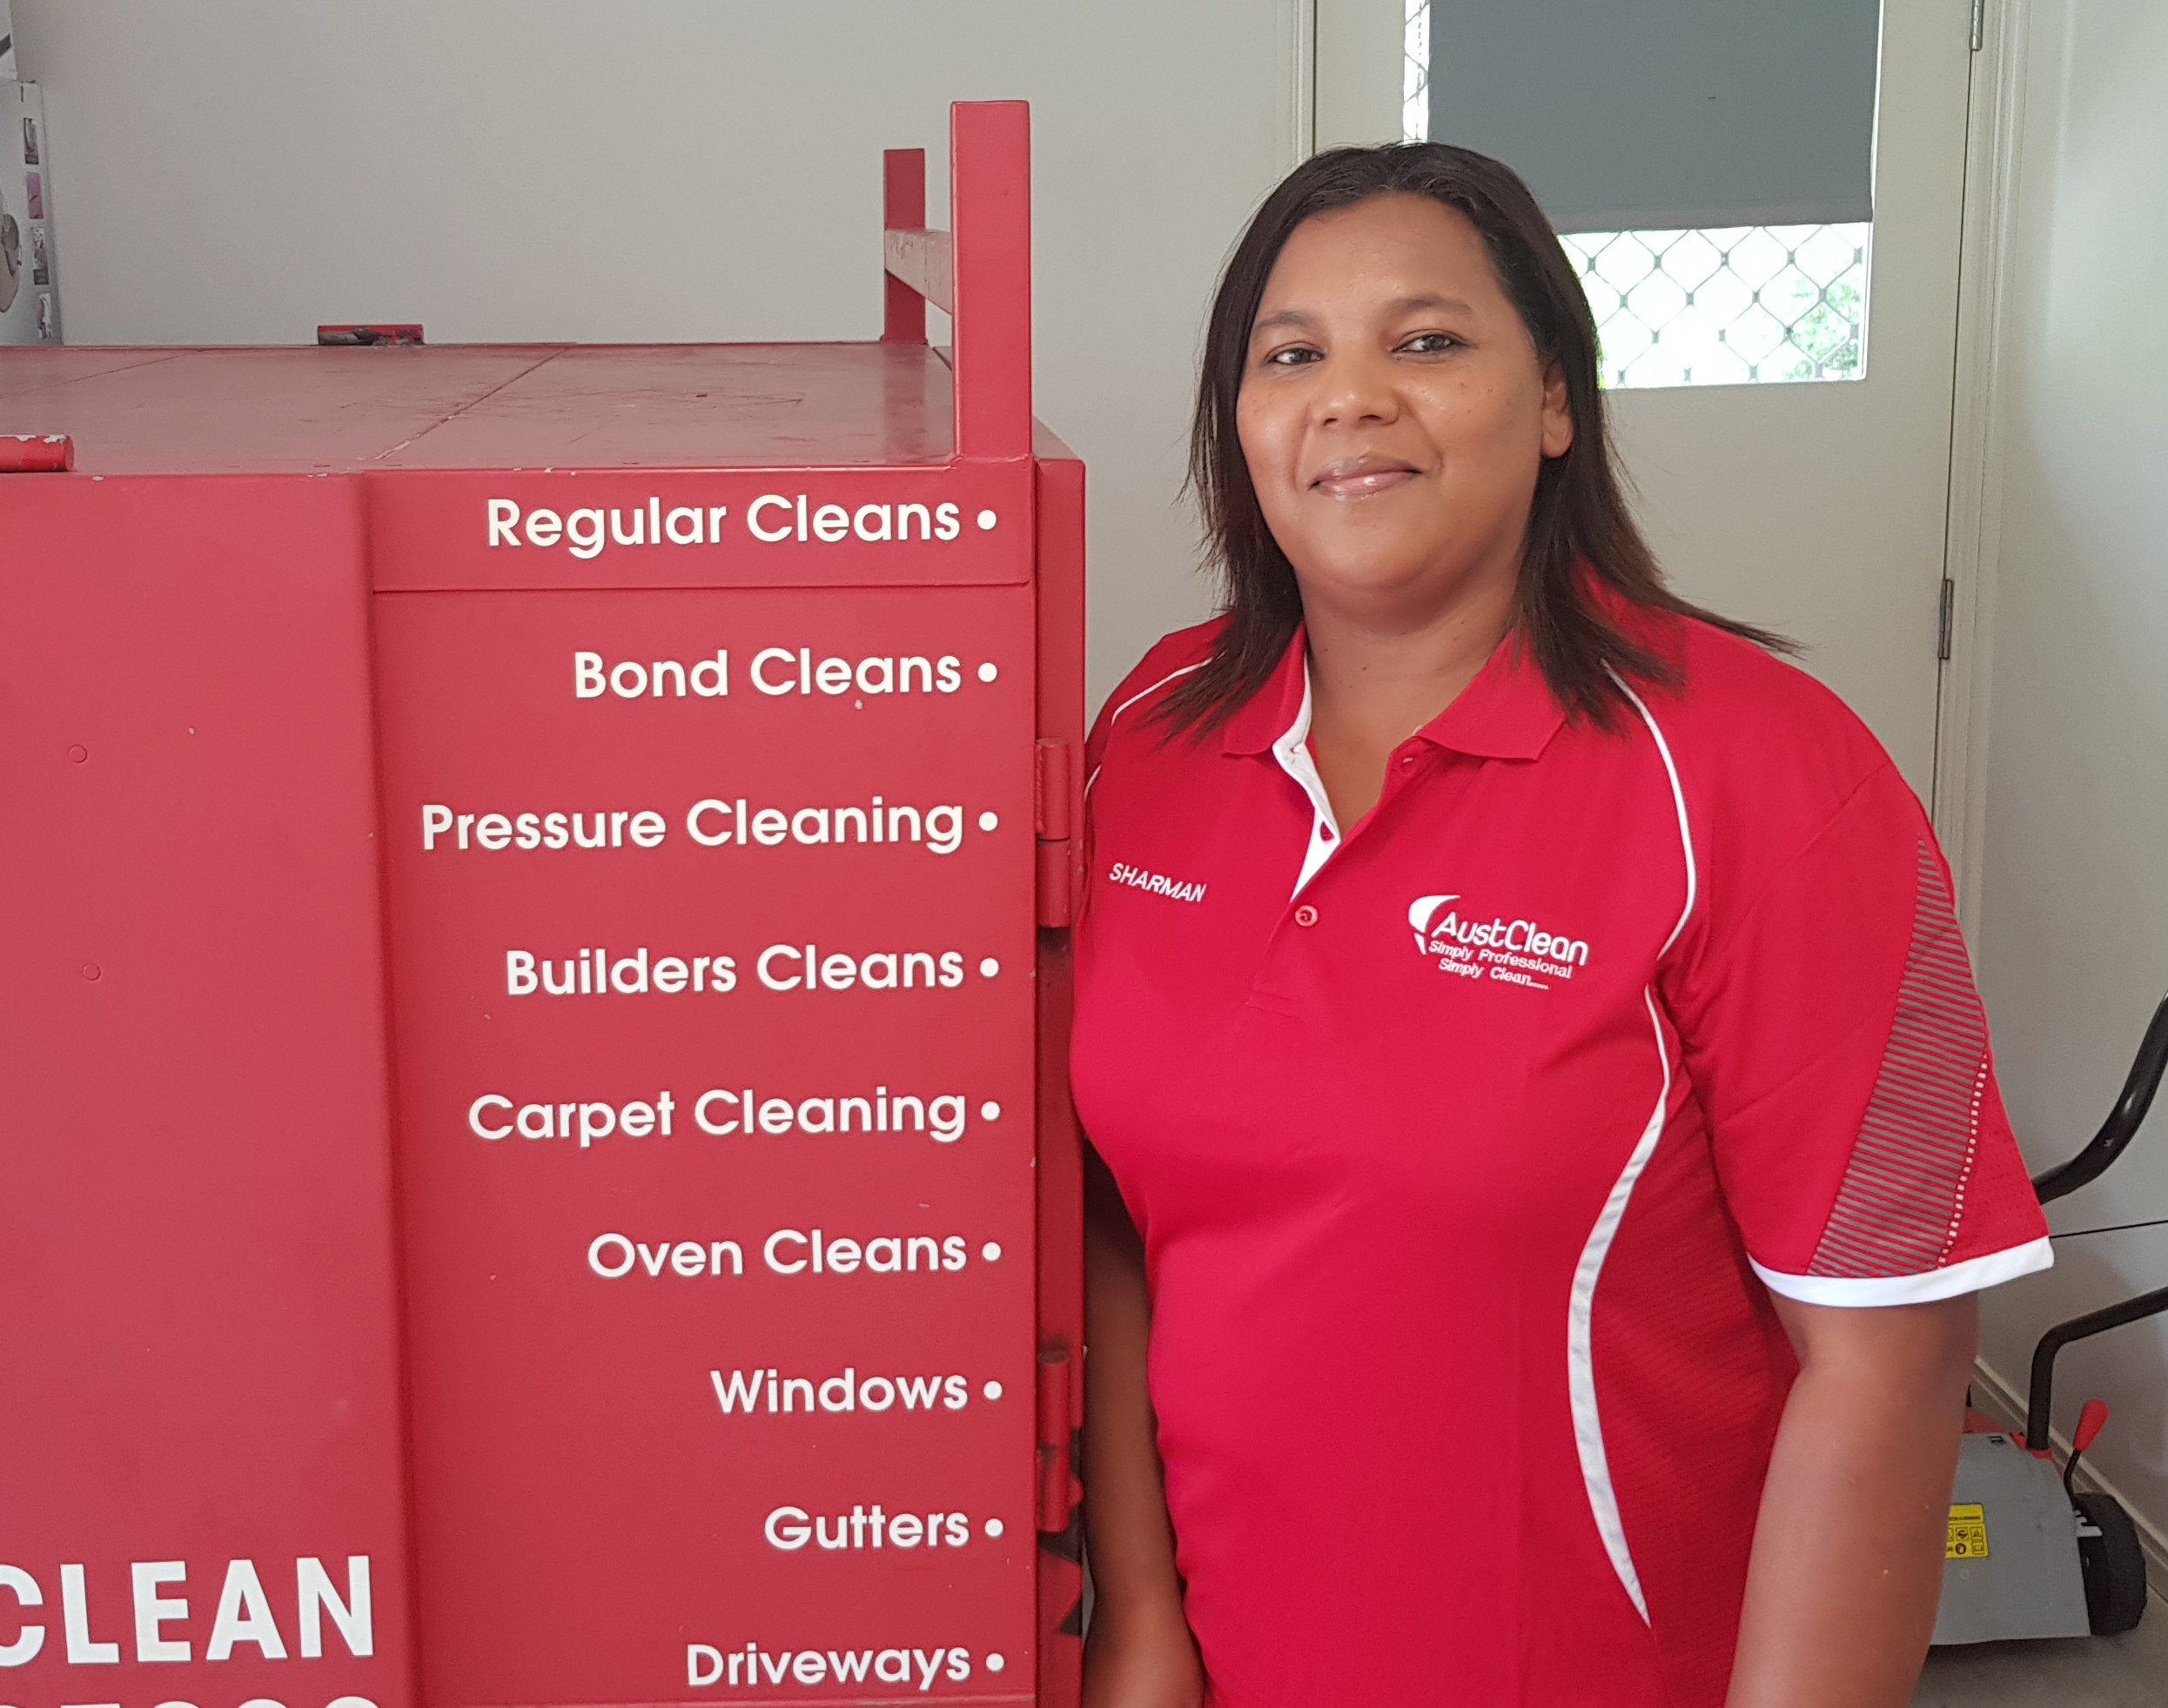 Sharman Davids from Austclean Cleaning services